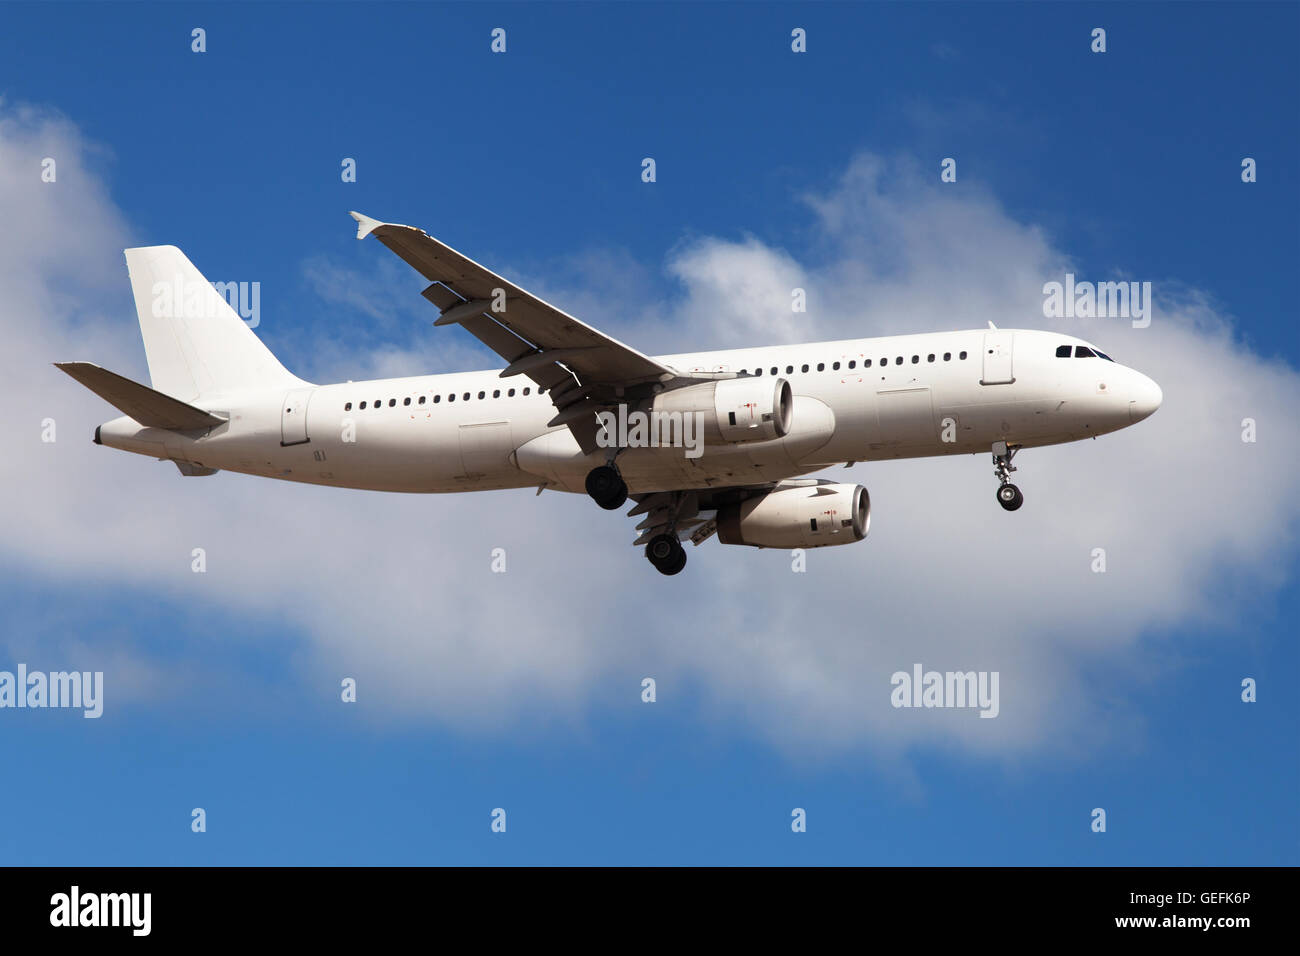 Airbus A320-200 without painting - Stock Image